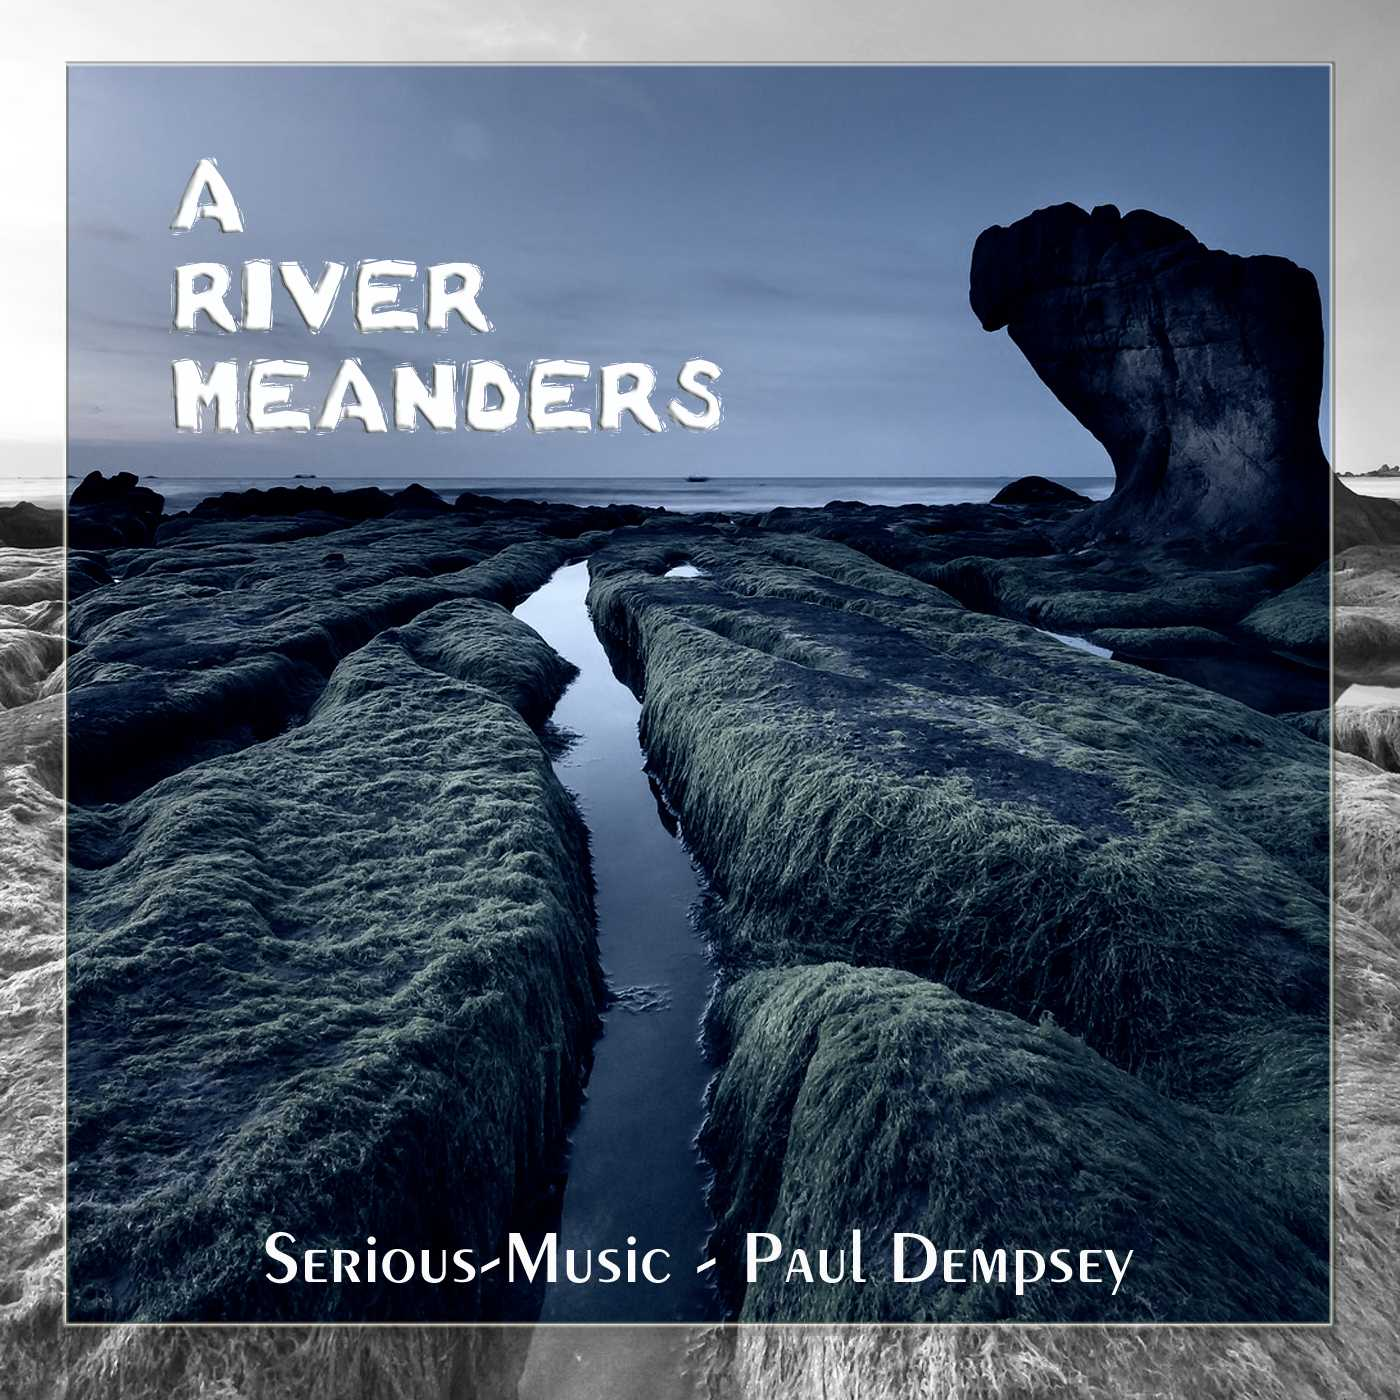 A River Meanders